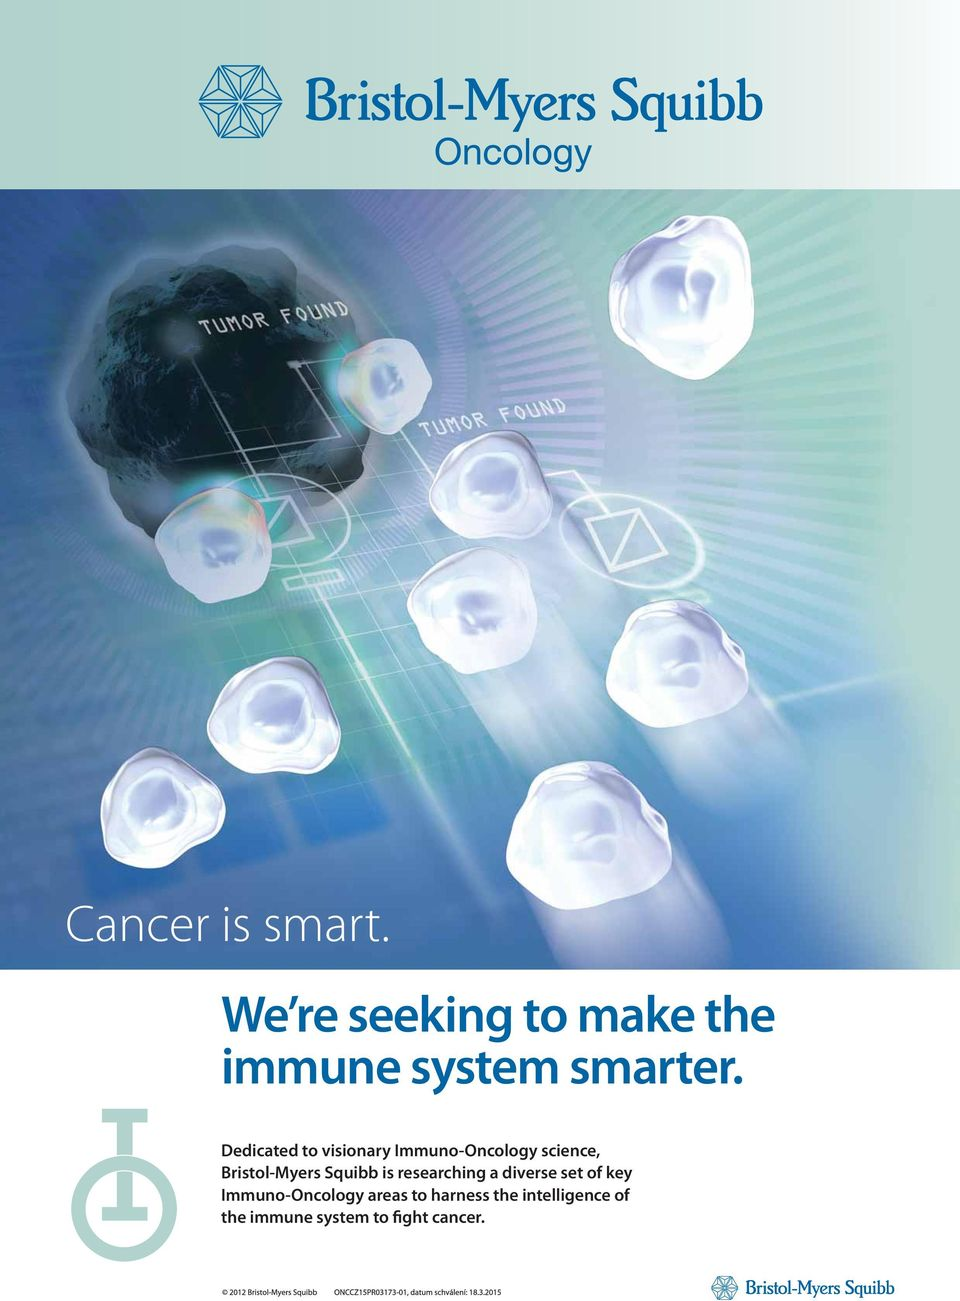 researching a diverse set of key Immuno-Oncology areas to harness the